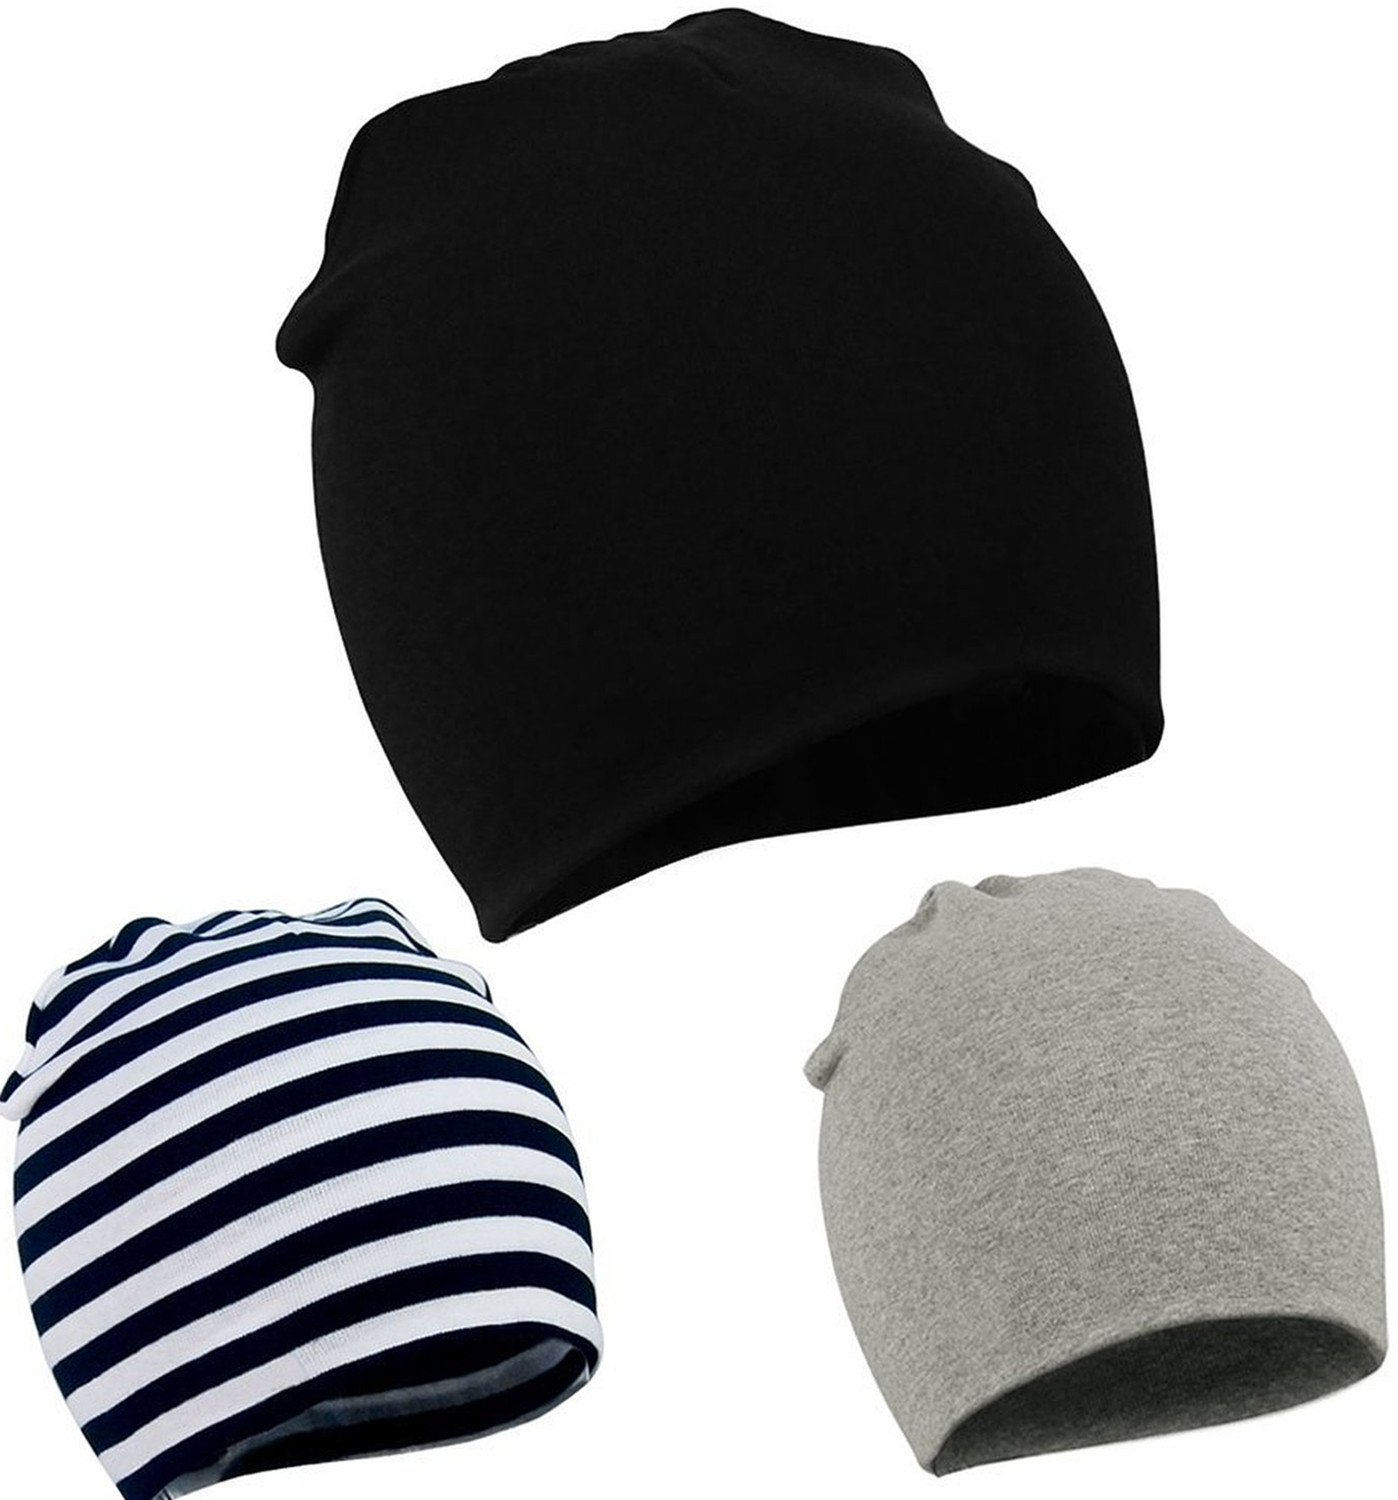 Zando Toddler Infant Baby Cotton Soft Cute Knit Kids Hat Beanies Cap A 3 Pack-Mix Color2